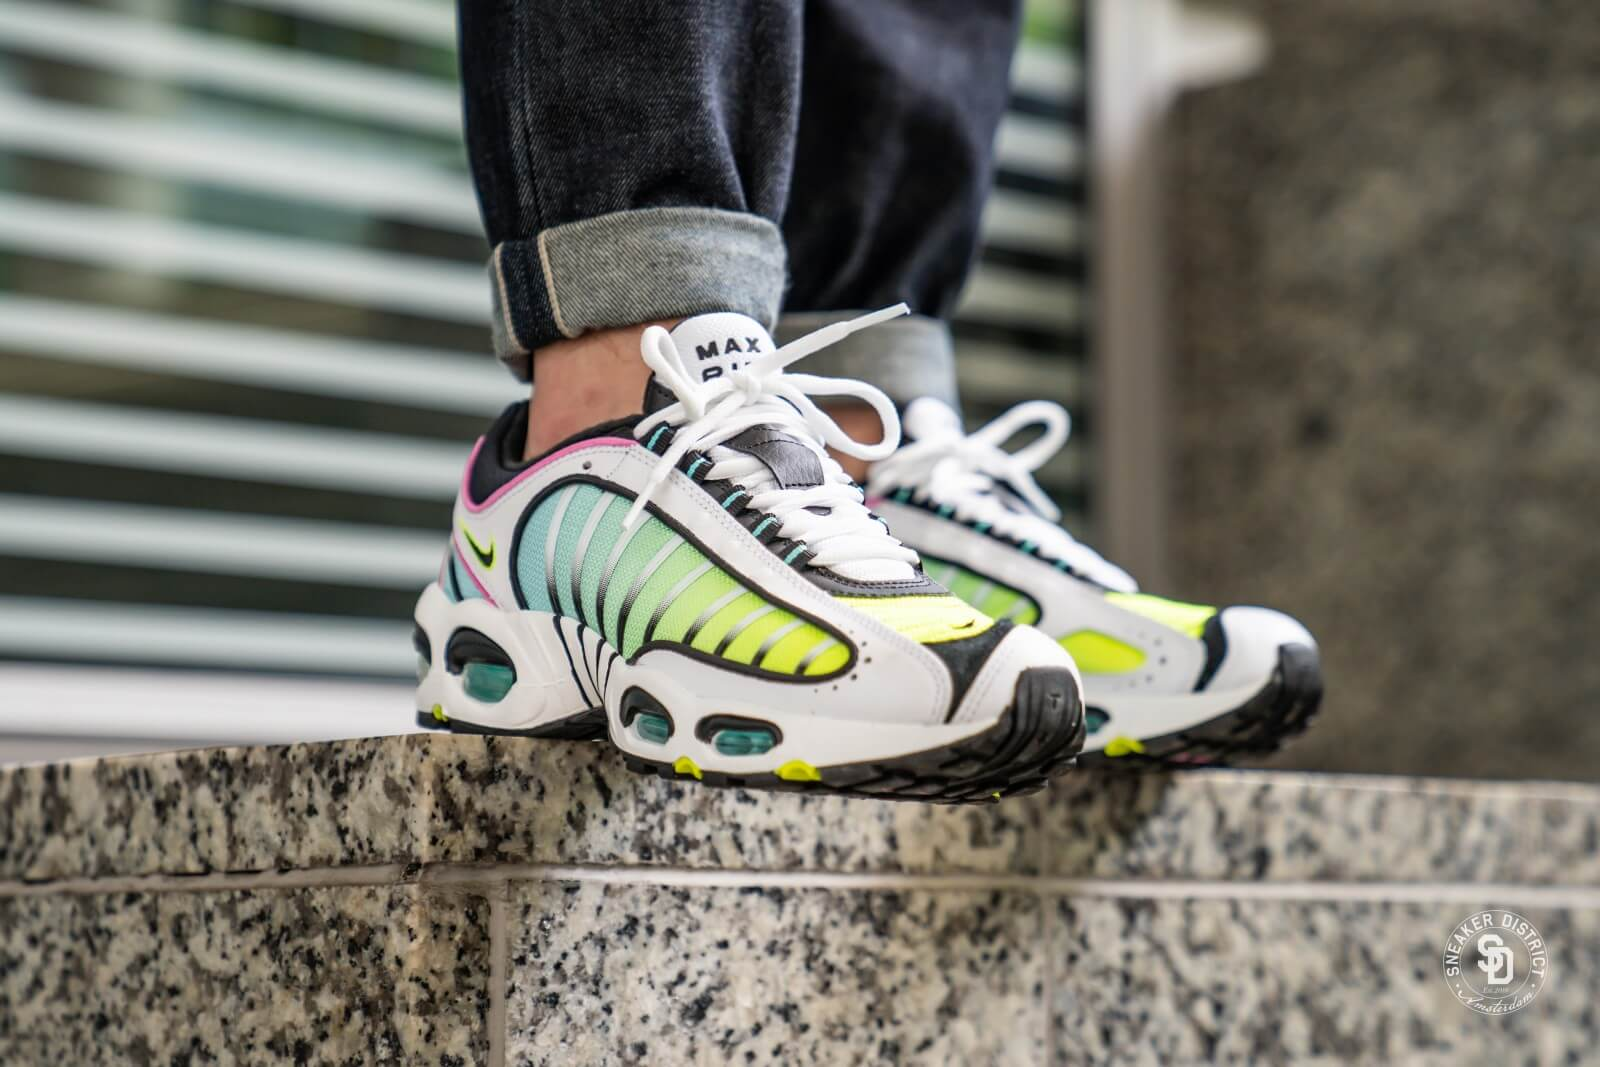 Nike Air Max Tailwind IV WhiteBlack China Rose Aurora Green AQ2567 103